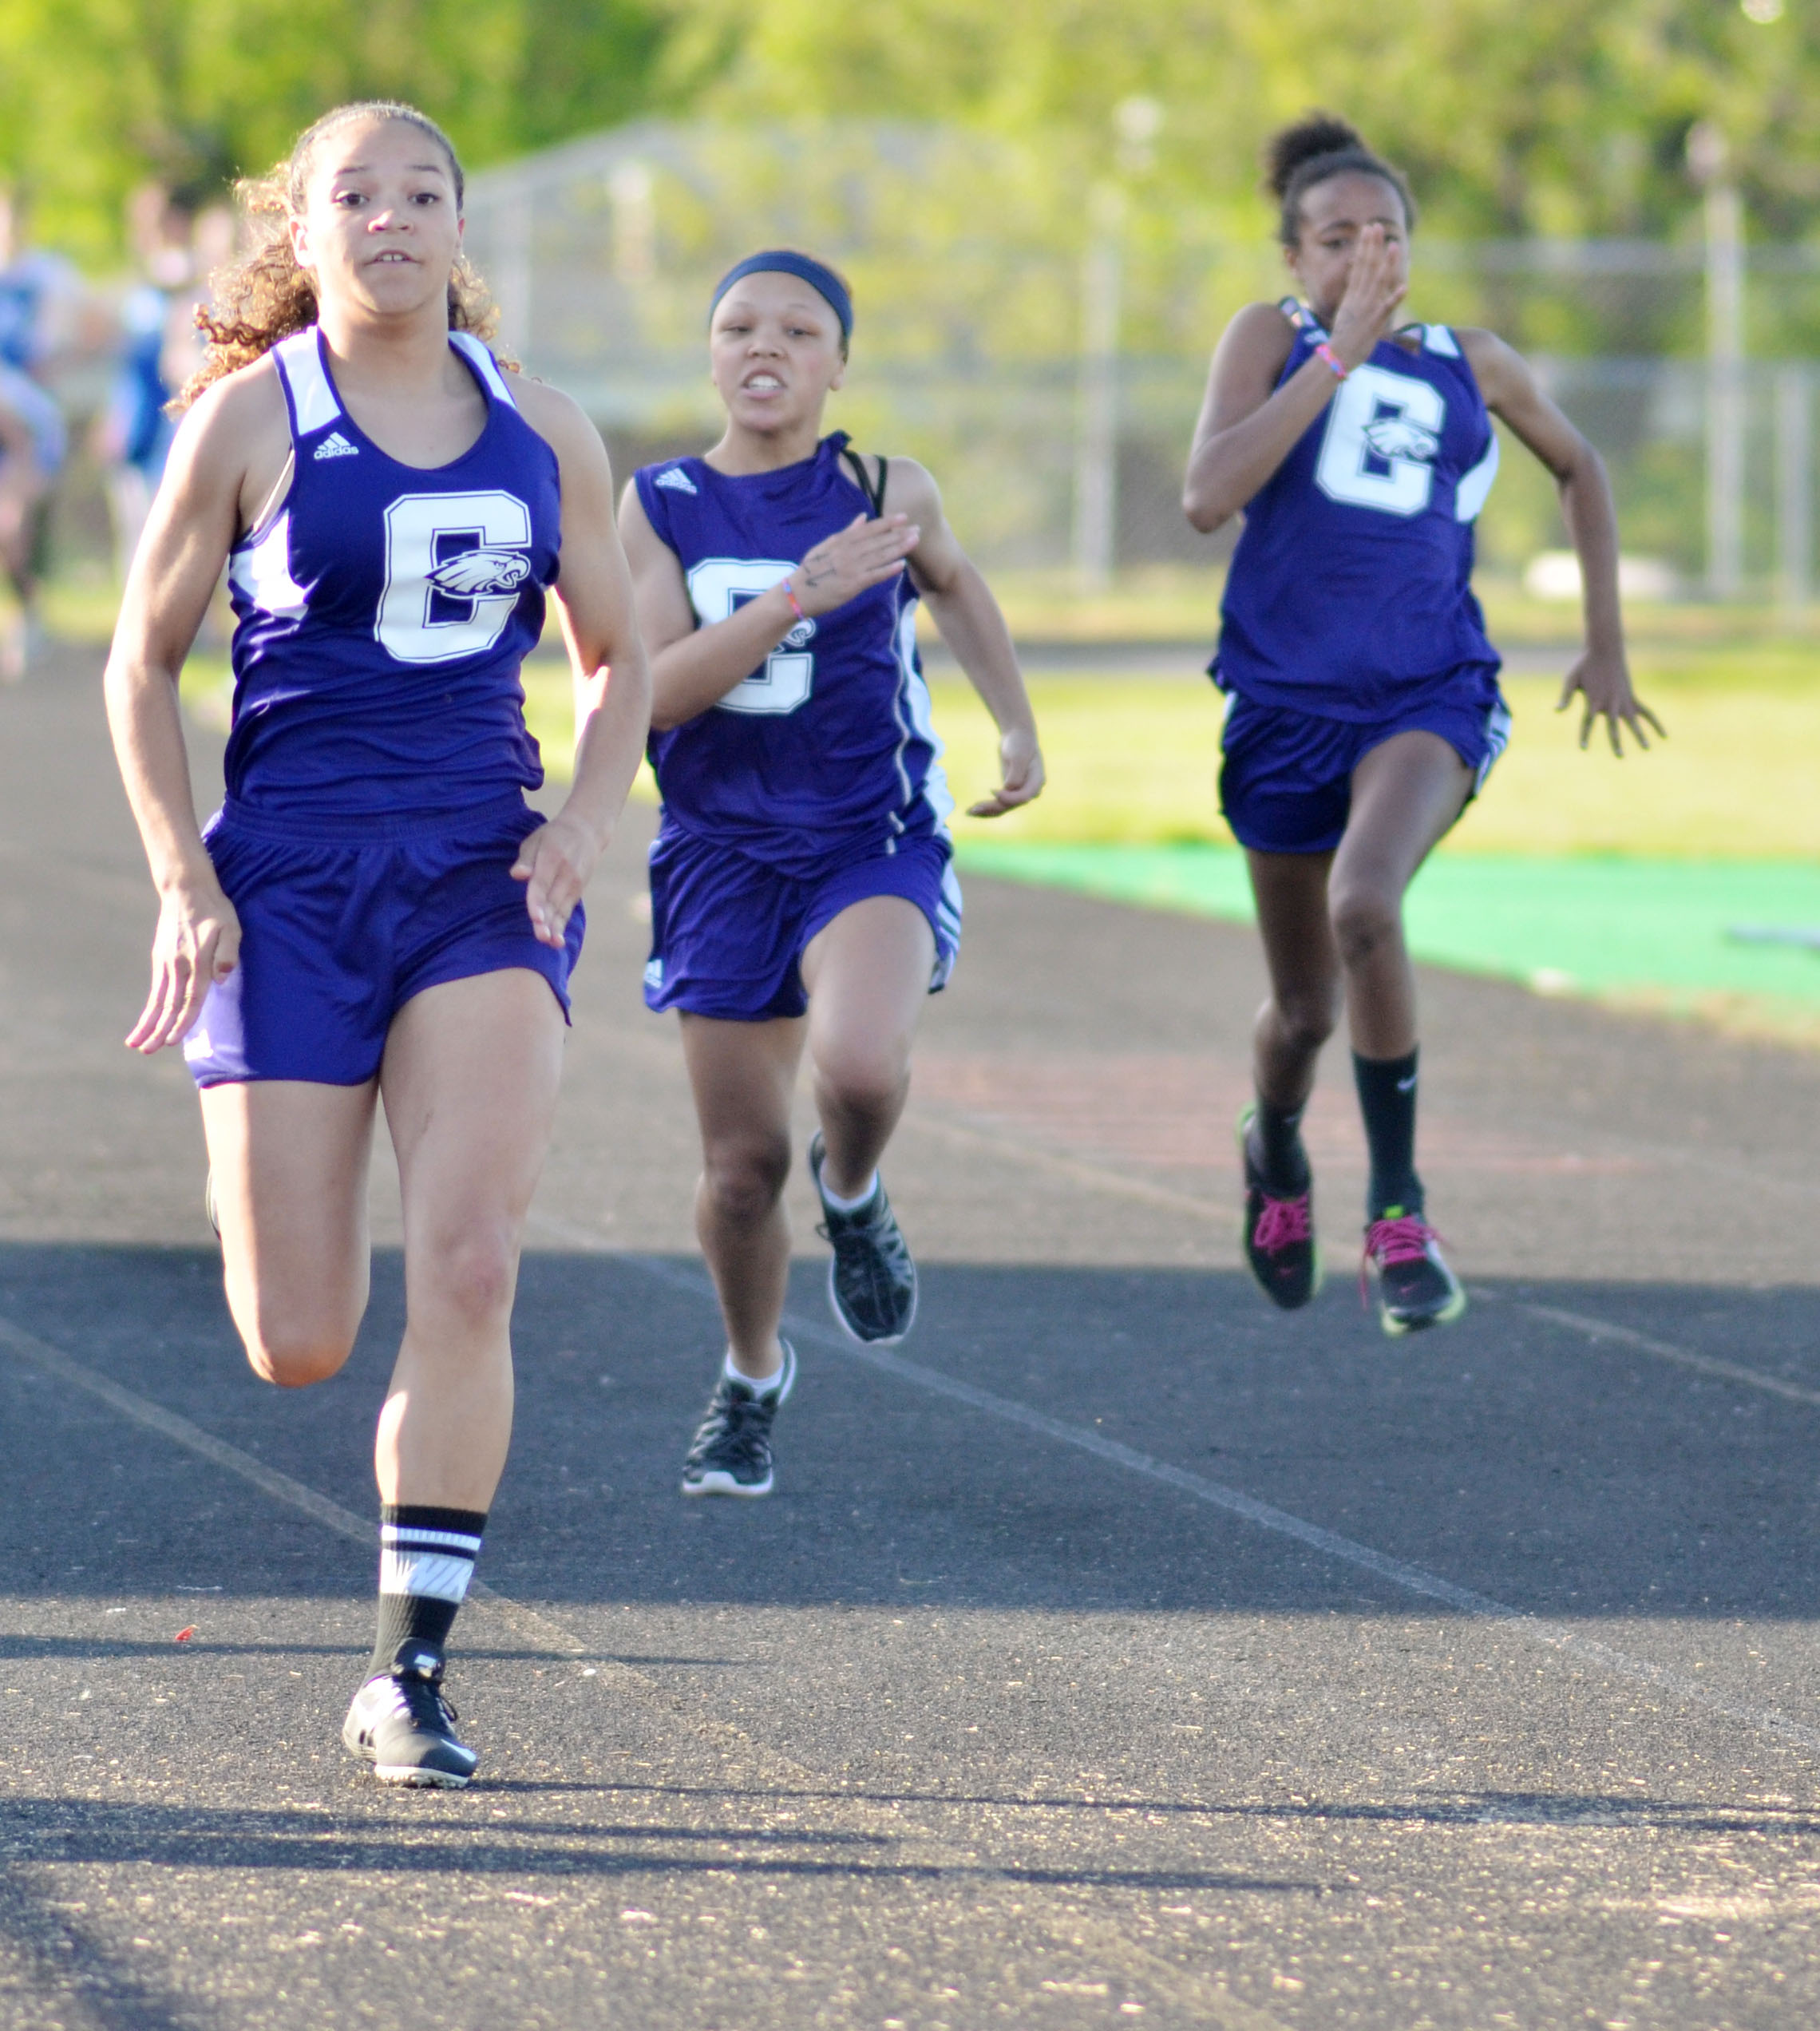 CHS freshman Taliyah Hazelwood wins the 100-meter dash. At right are Campbellsville Middle School seventh-graders Kitana Taylor and Aun Daya Coleman.